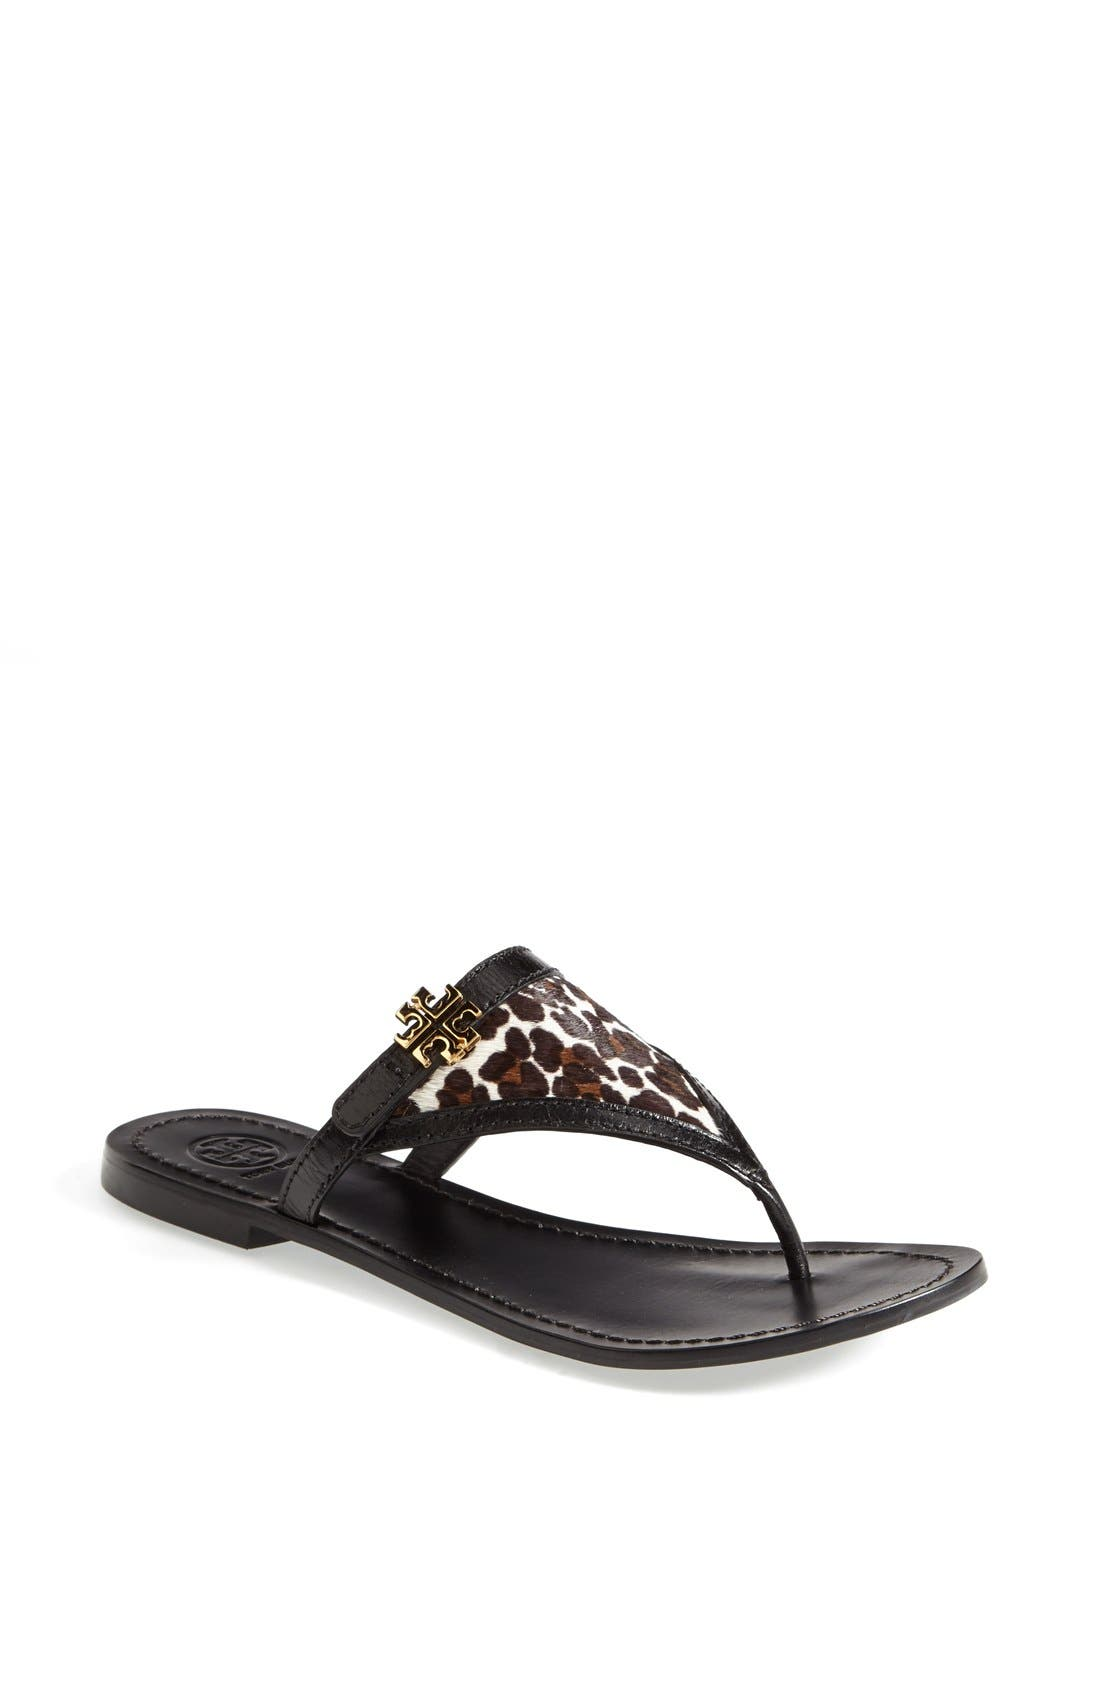 Alternate Image 1 Selected - Tory Burch 'Eloise' Flat Thong Sandal (Nordstrom Exclusive) (Women)